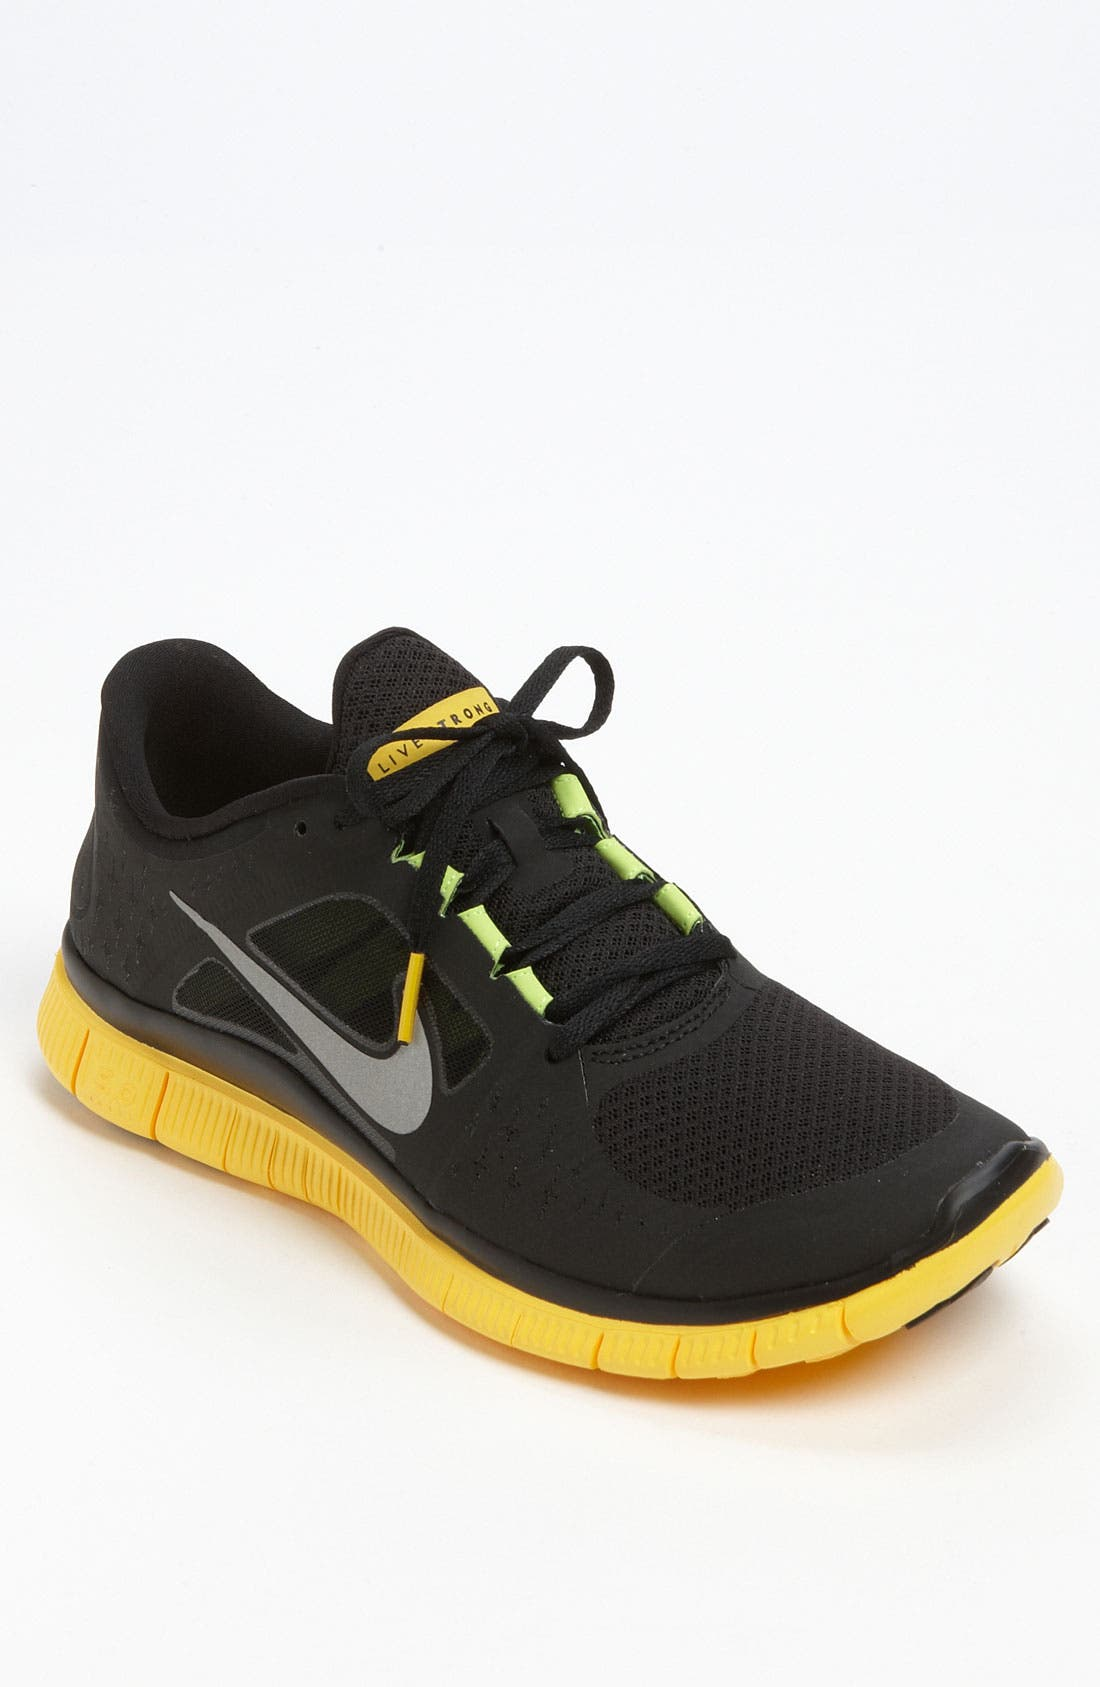 Main Image - Nike 'Free Run+ 3 LAF' Running Shoe (Men)